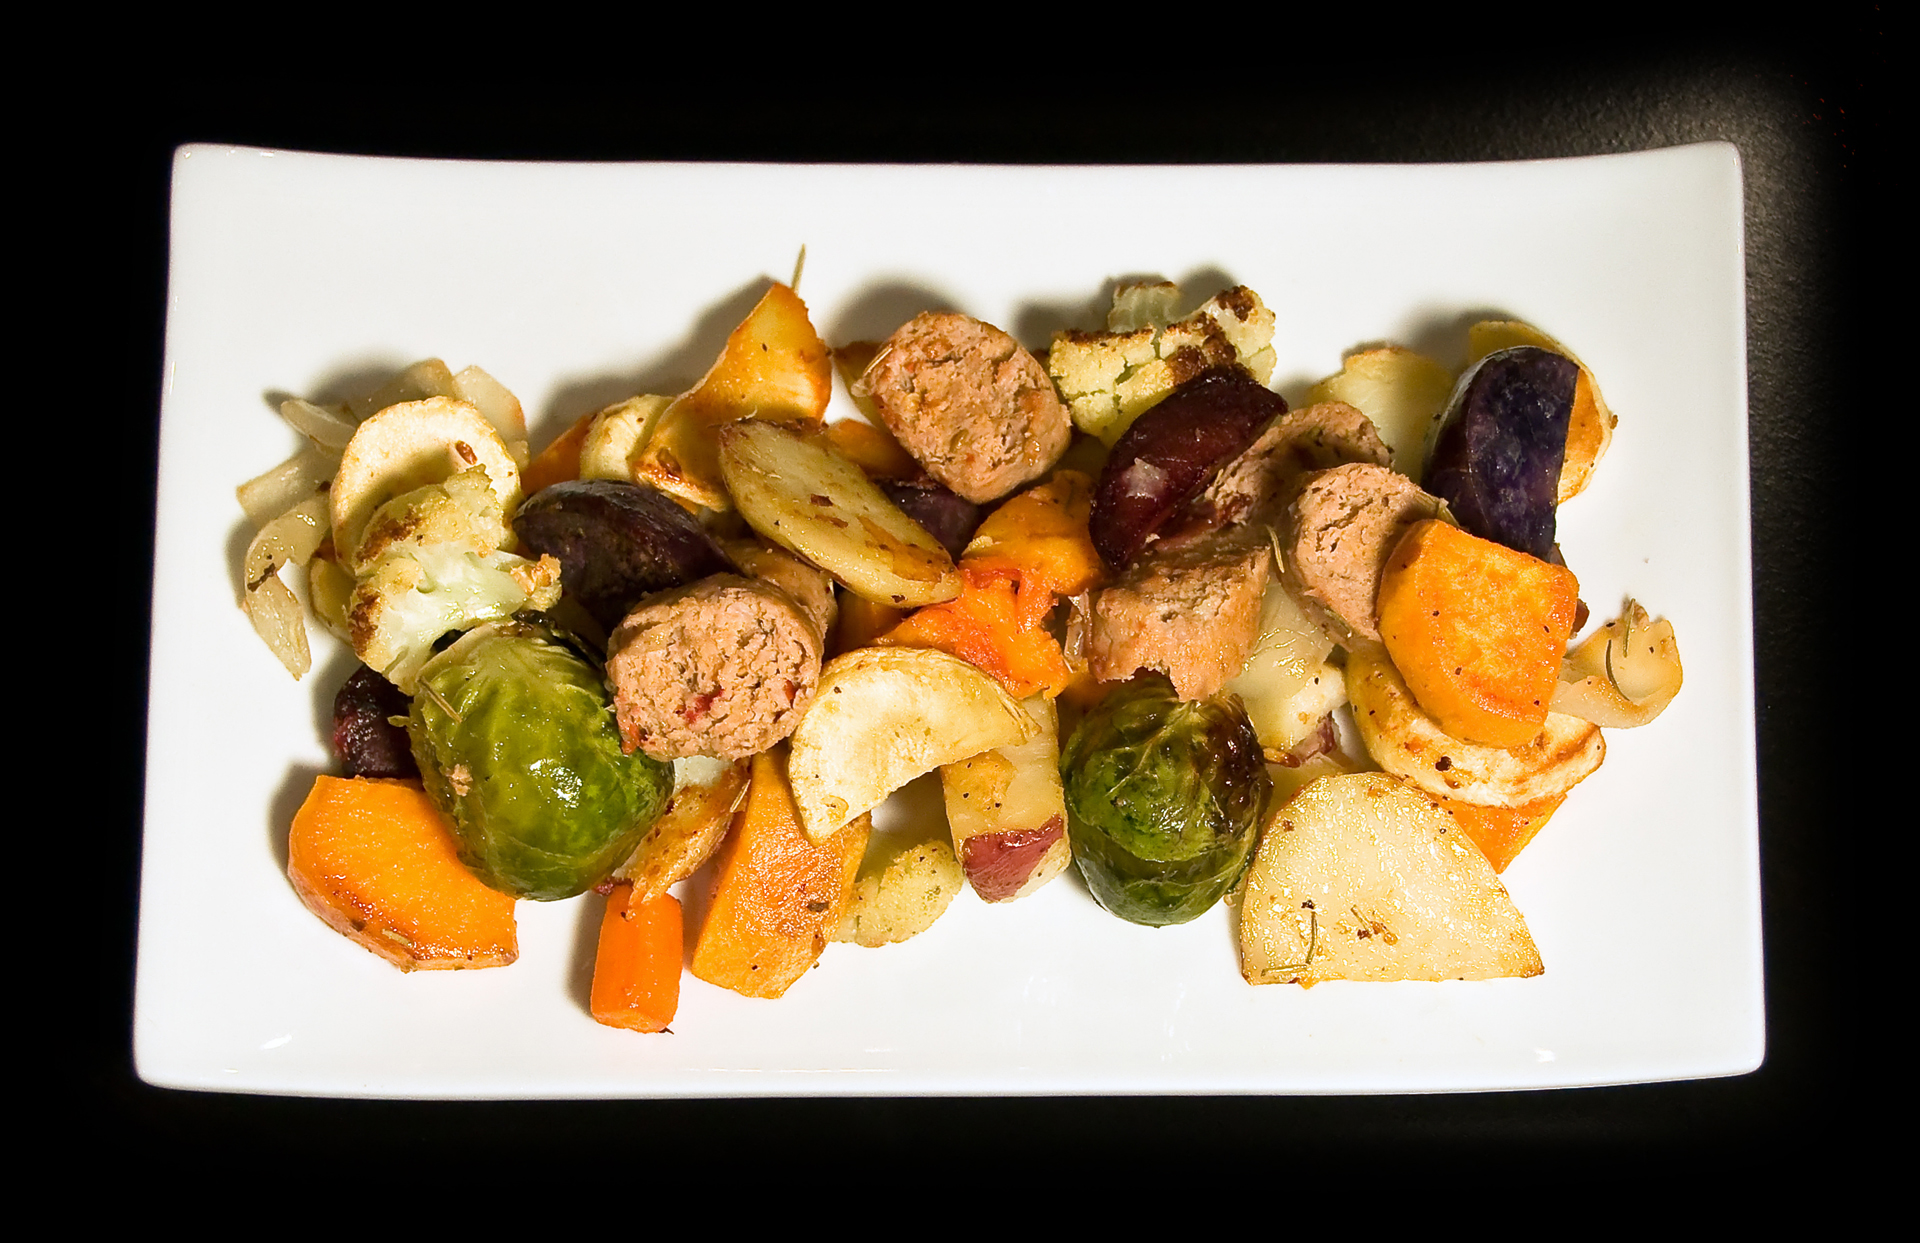 Roasted Root Vegetables with Turkey Sausage 4